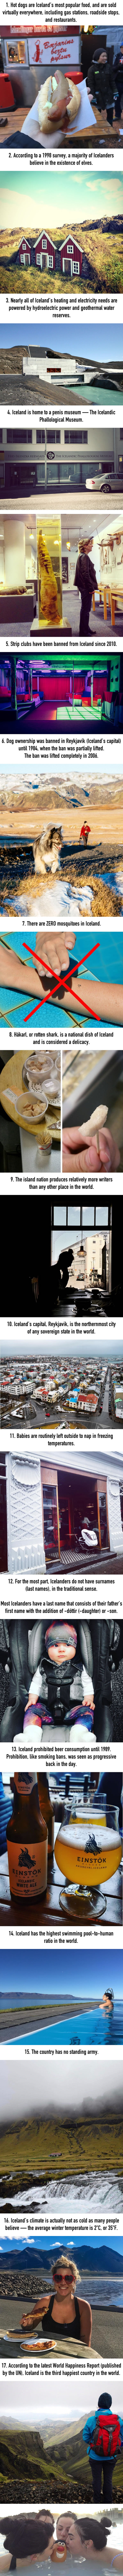 17 Bizarre Facts About Iceland